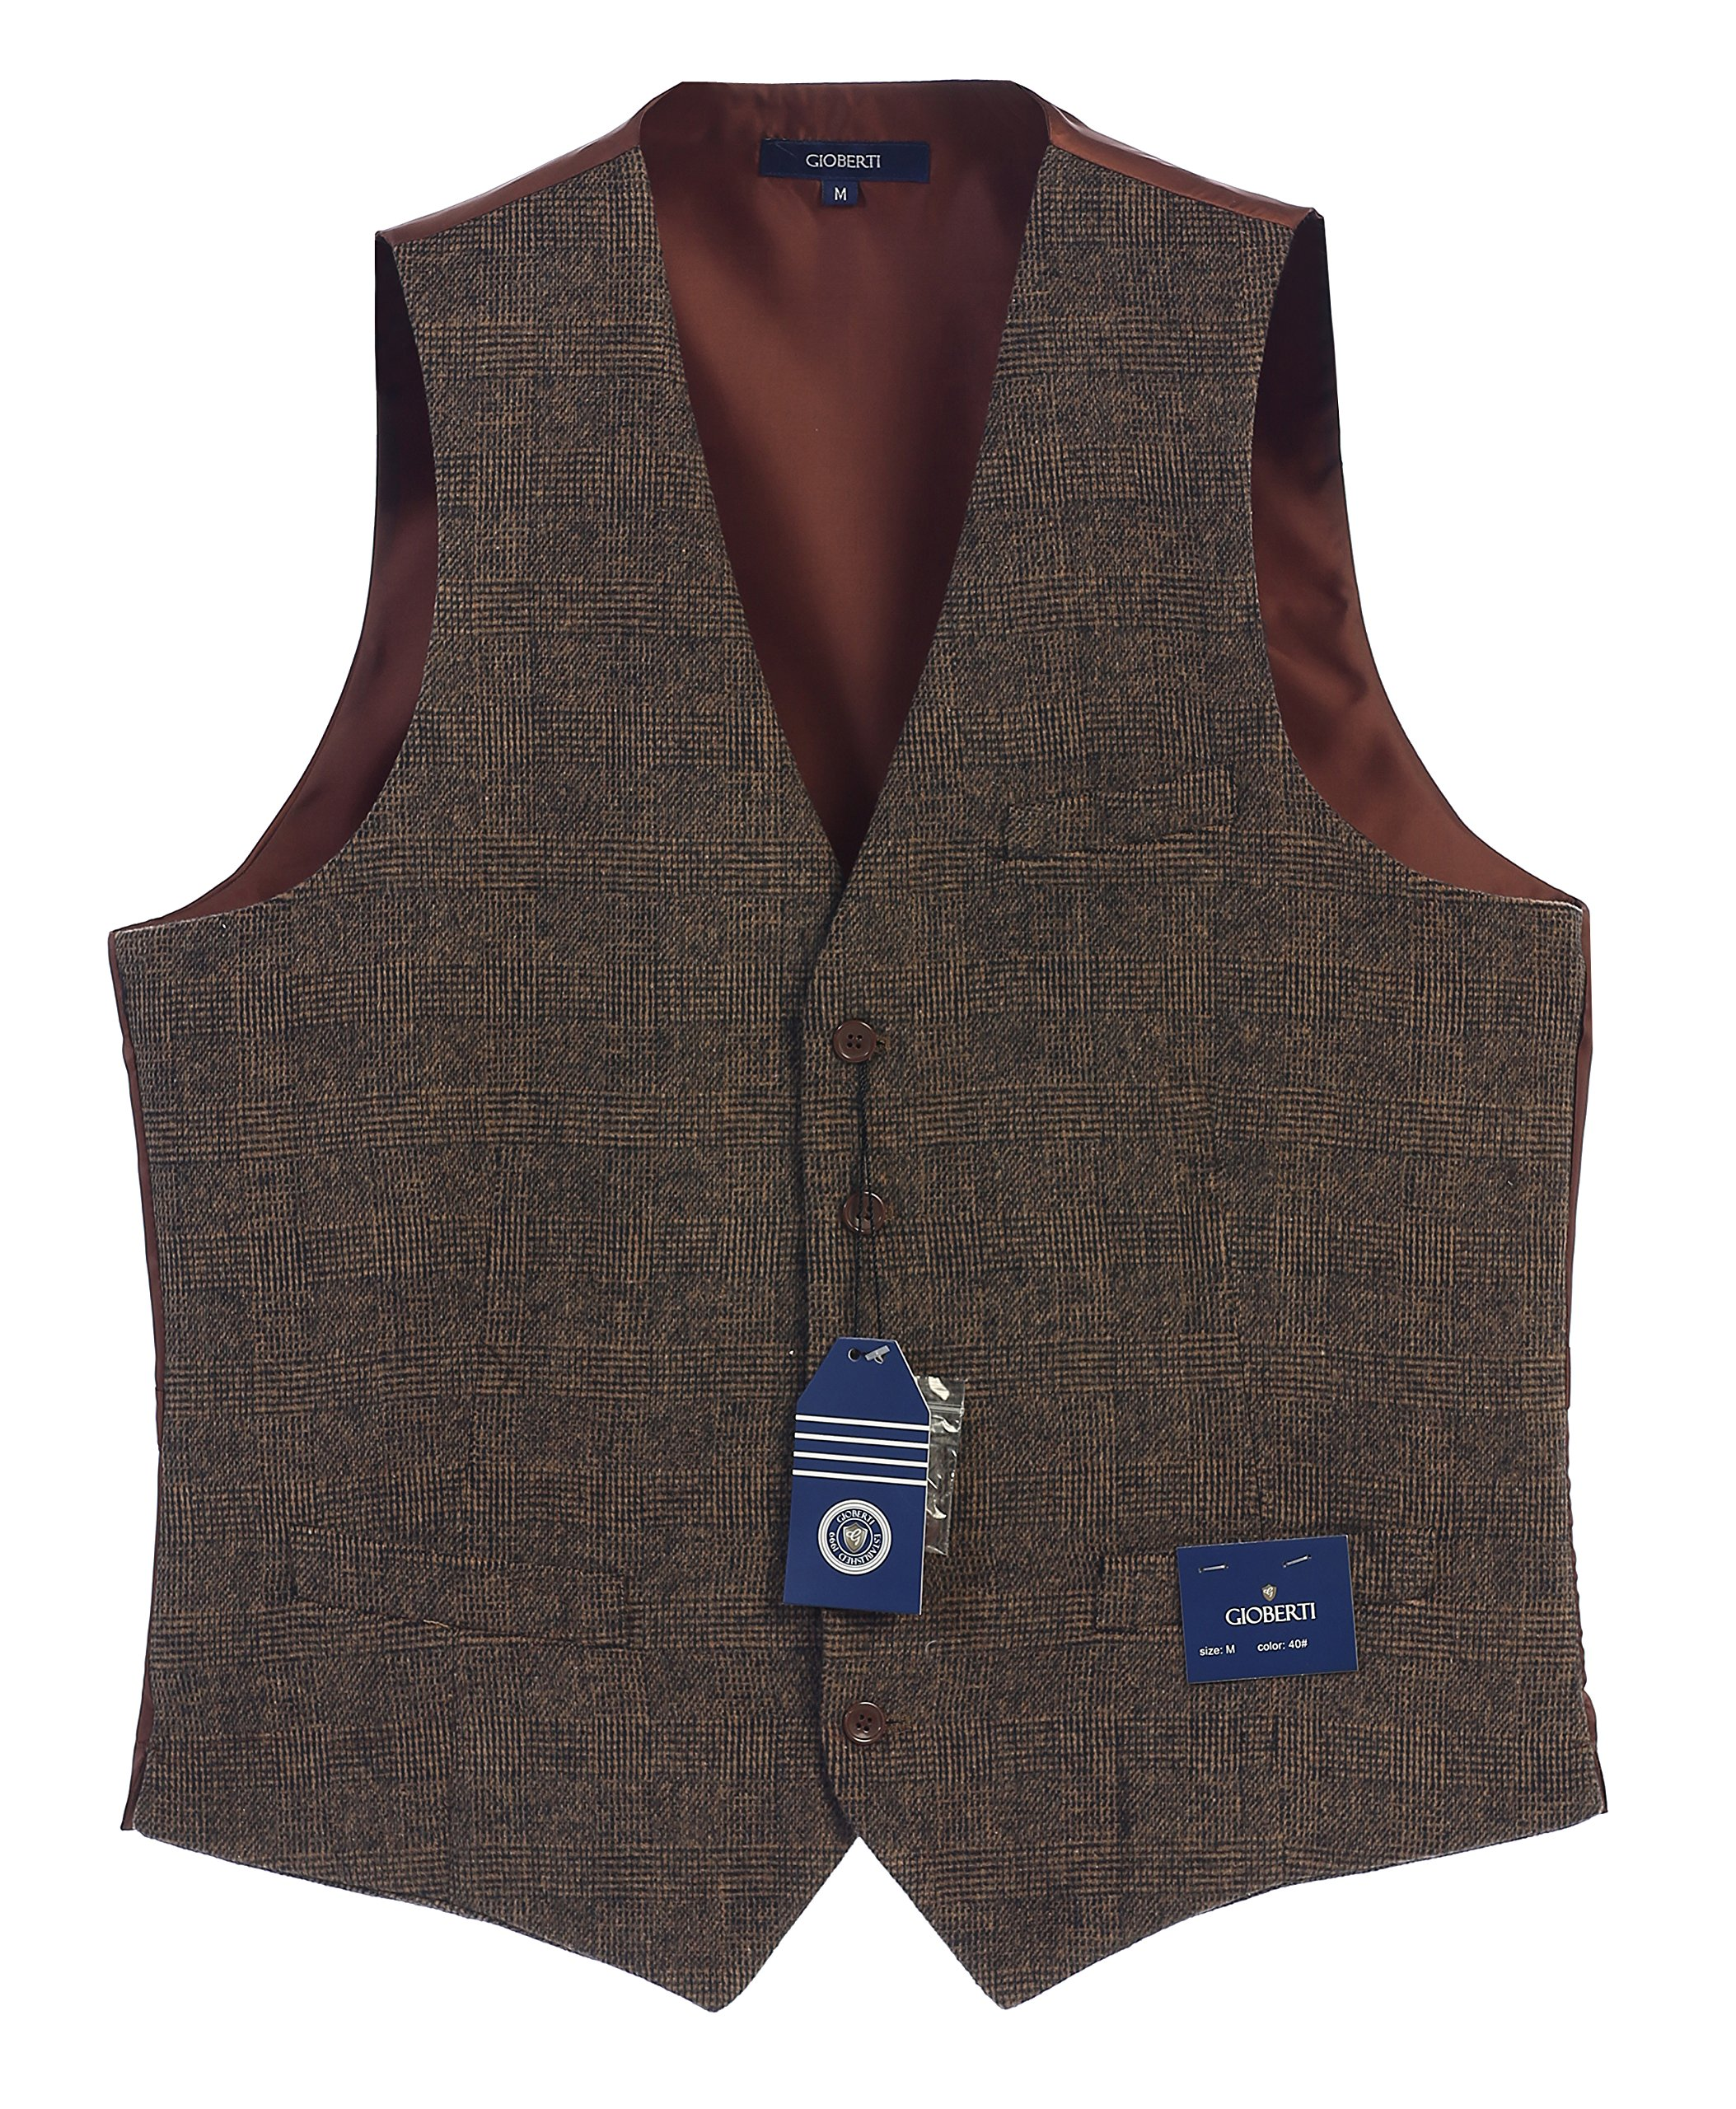 Gioberti Men's 5 Button Formal Tweed Suit Vest, Brown Checked, Large